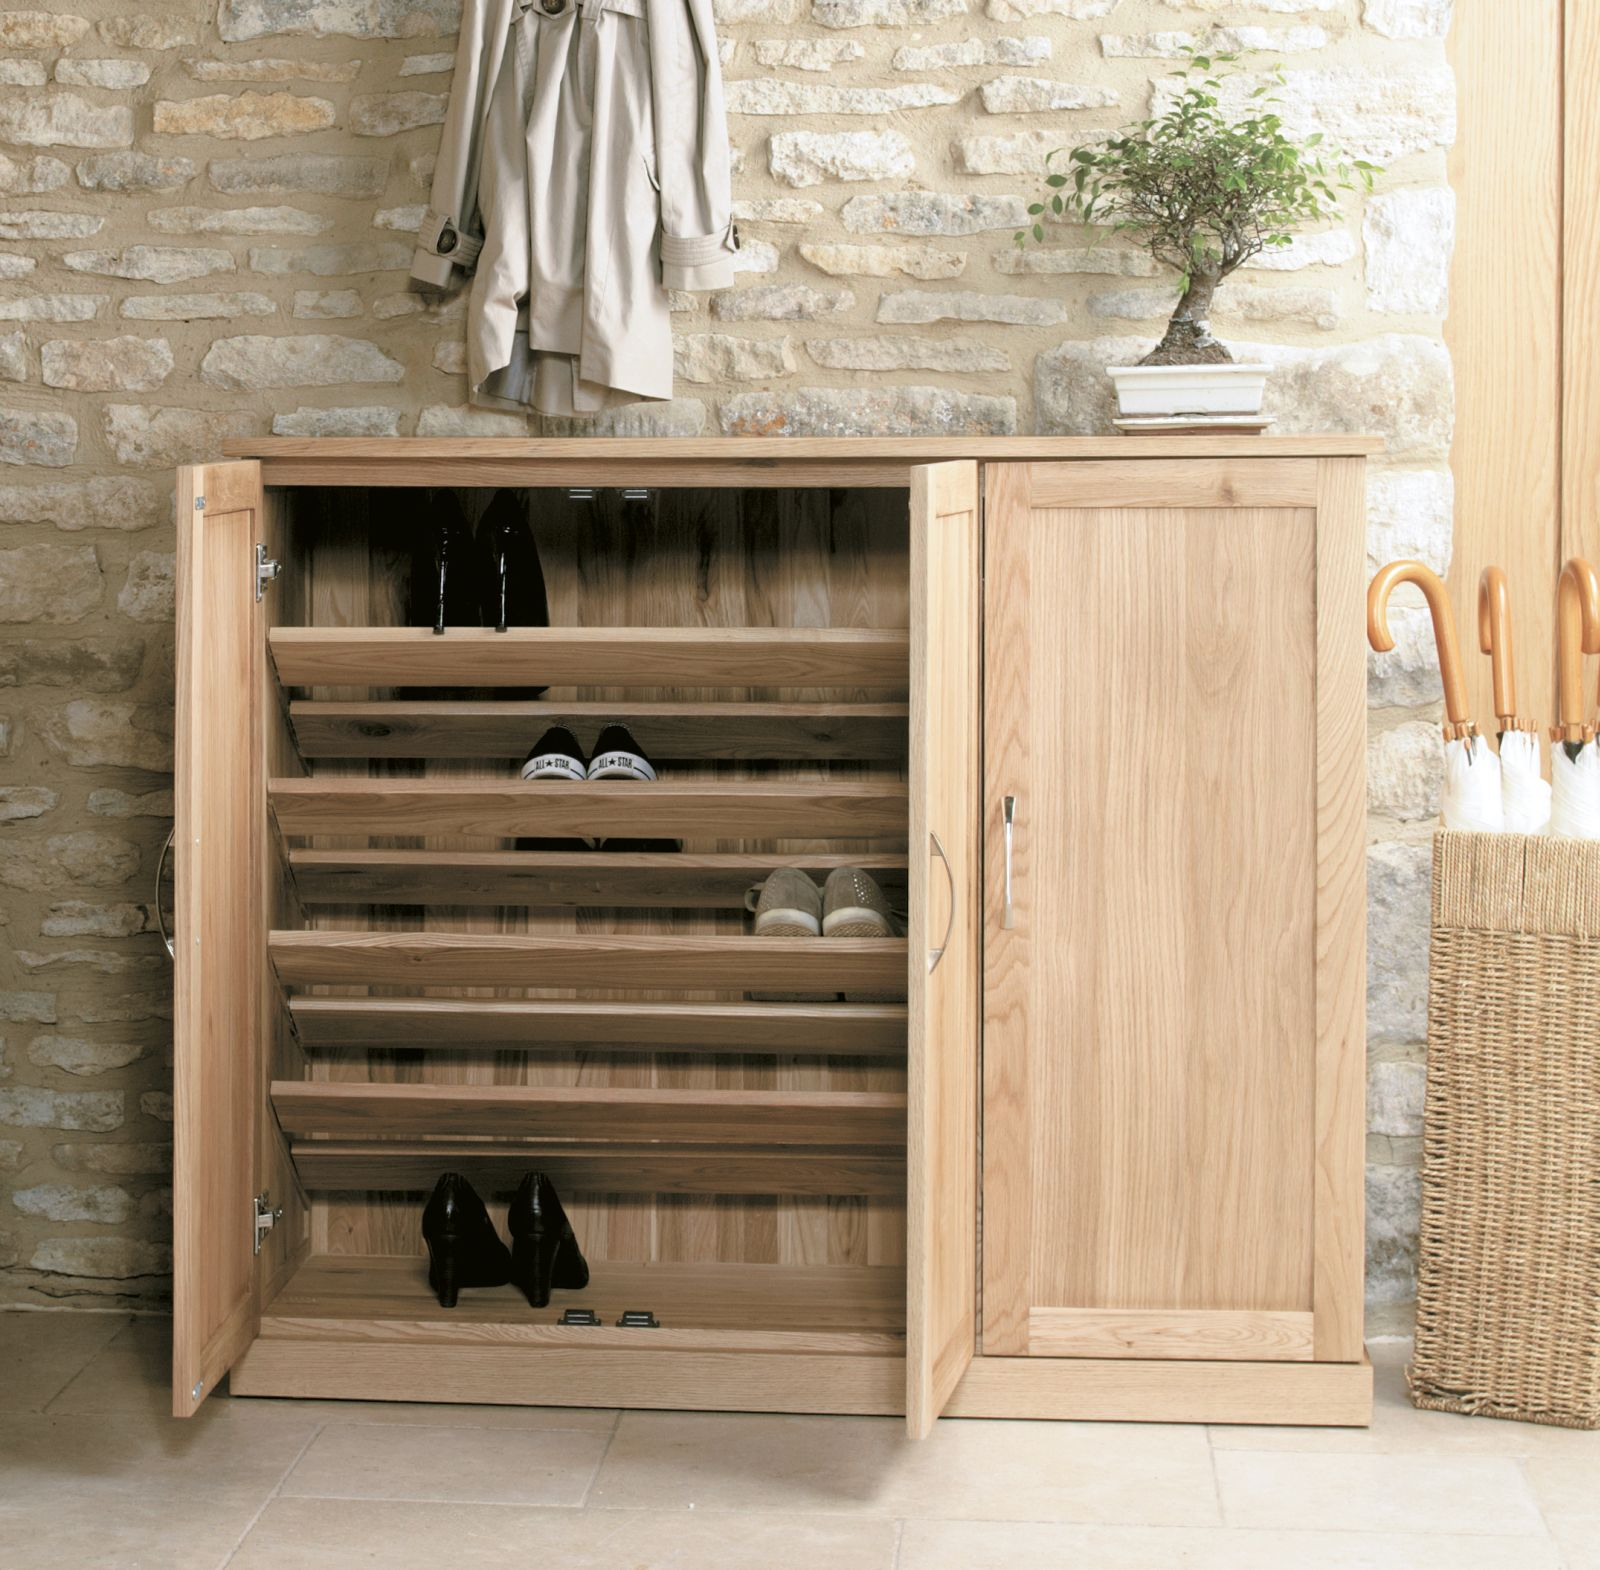 Mobel Solid Oak Furniture Shoe Storage Hallway Bench: Mobel Solid Modern Oak Hallway Furniture Extra Large Shoe